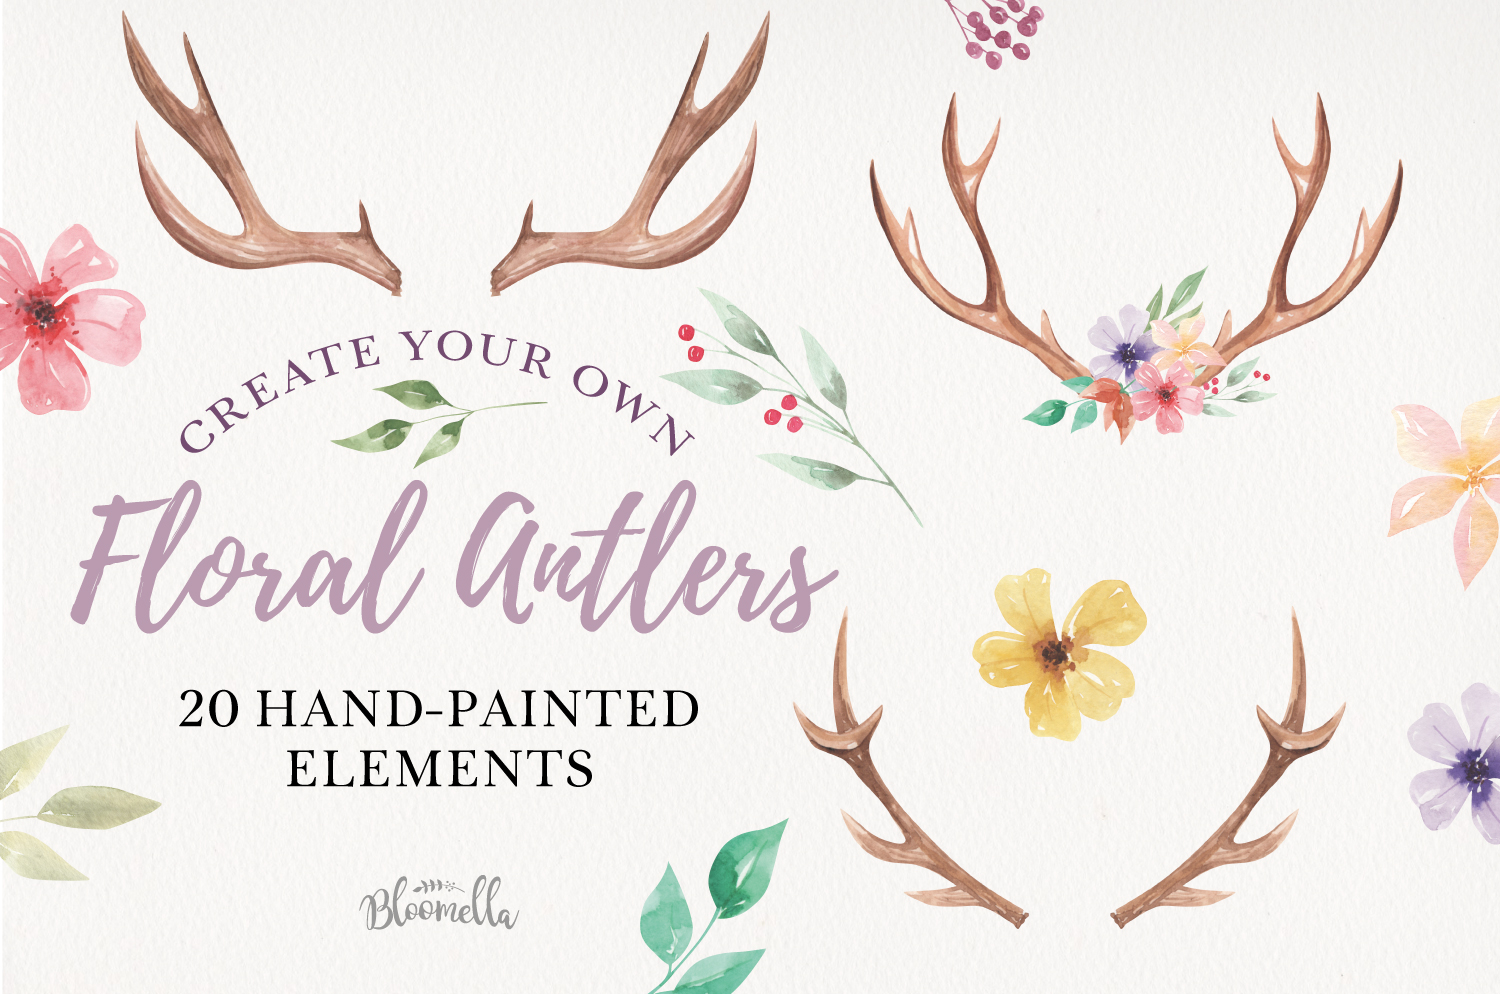 Create Your Own Watercolor Elements Flowers Antlers Florals example image 1